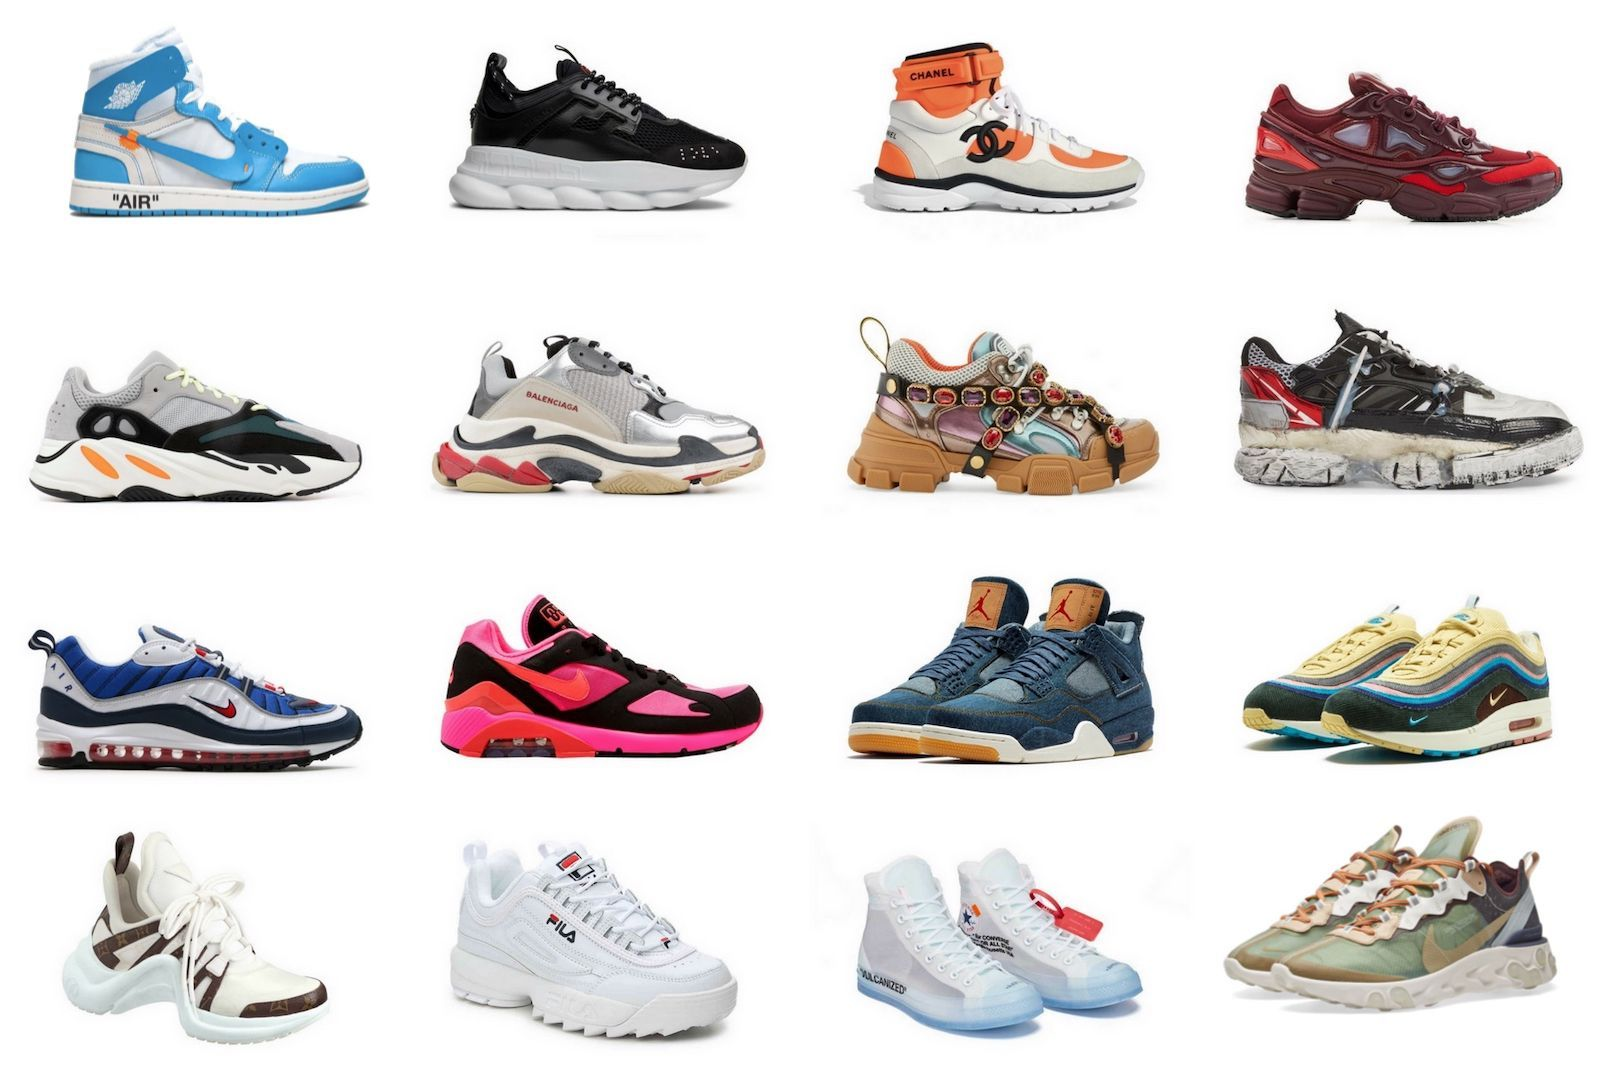 The Sneaker of the Year 2018